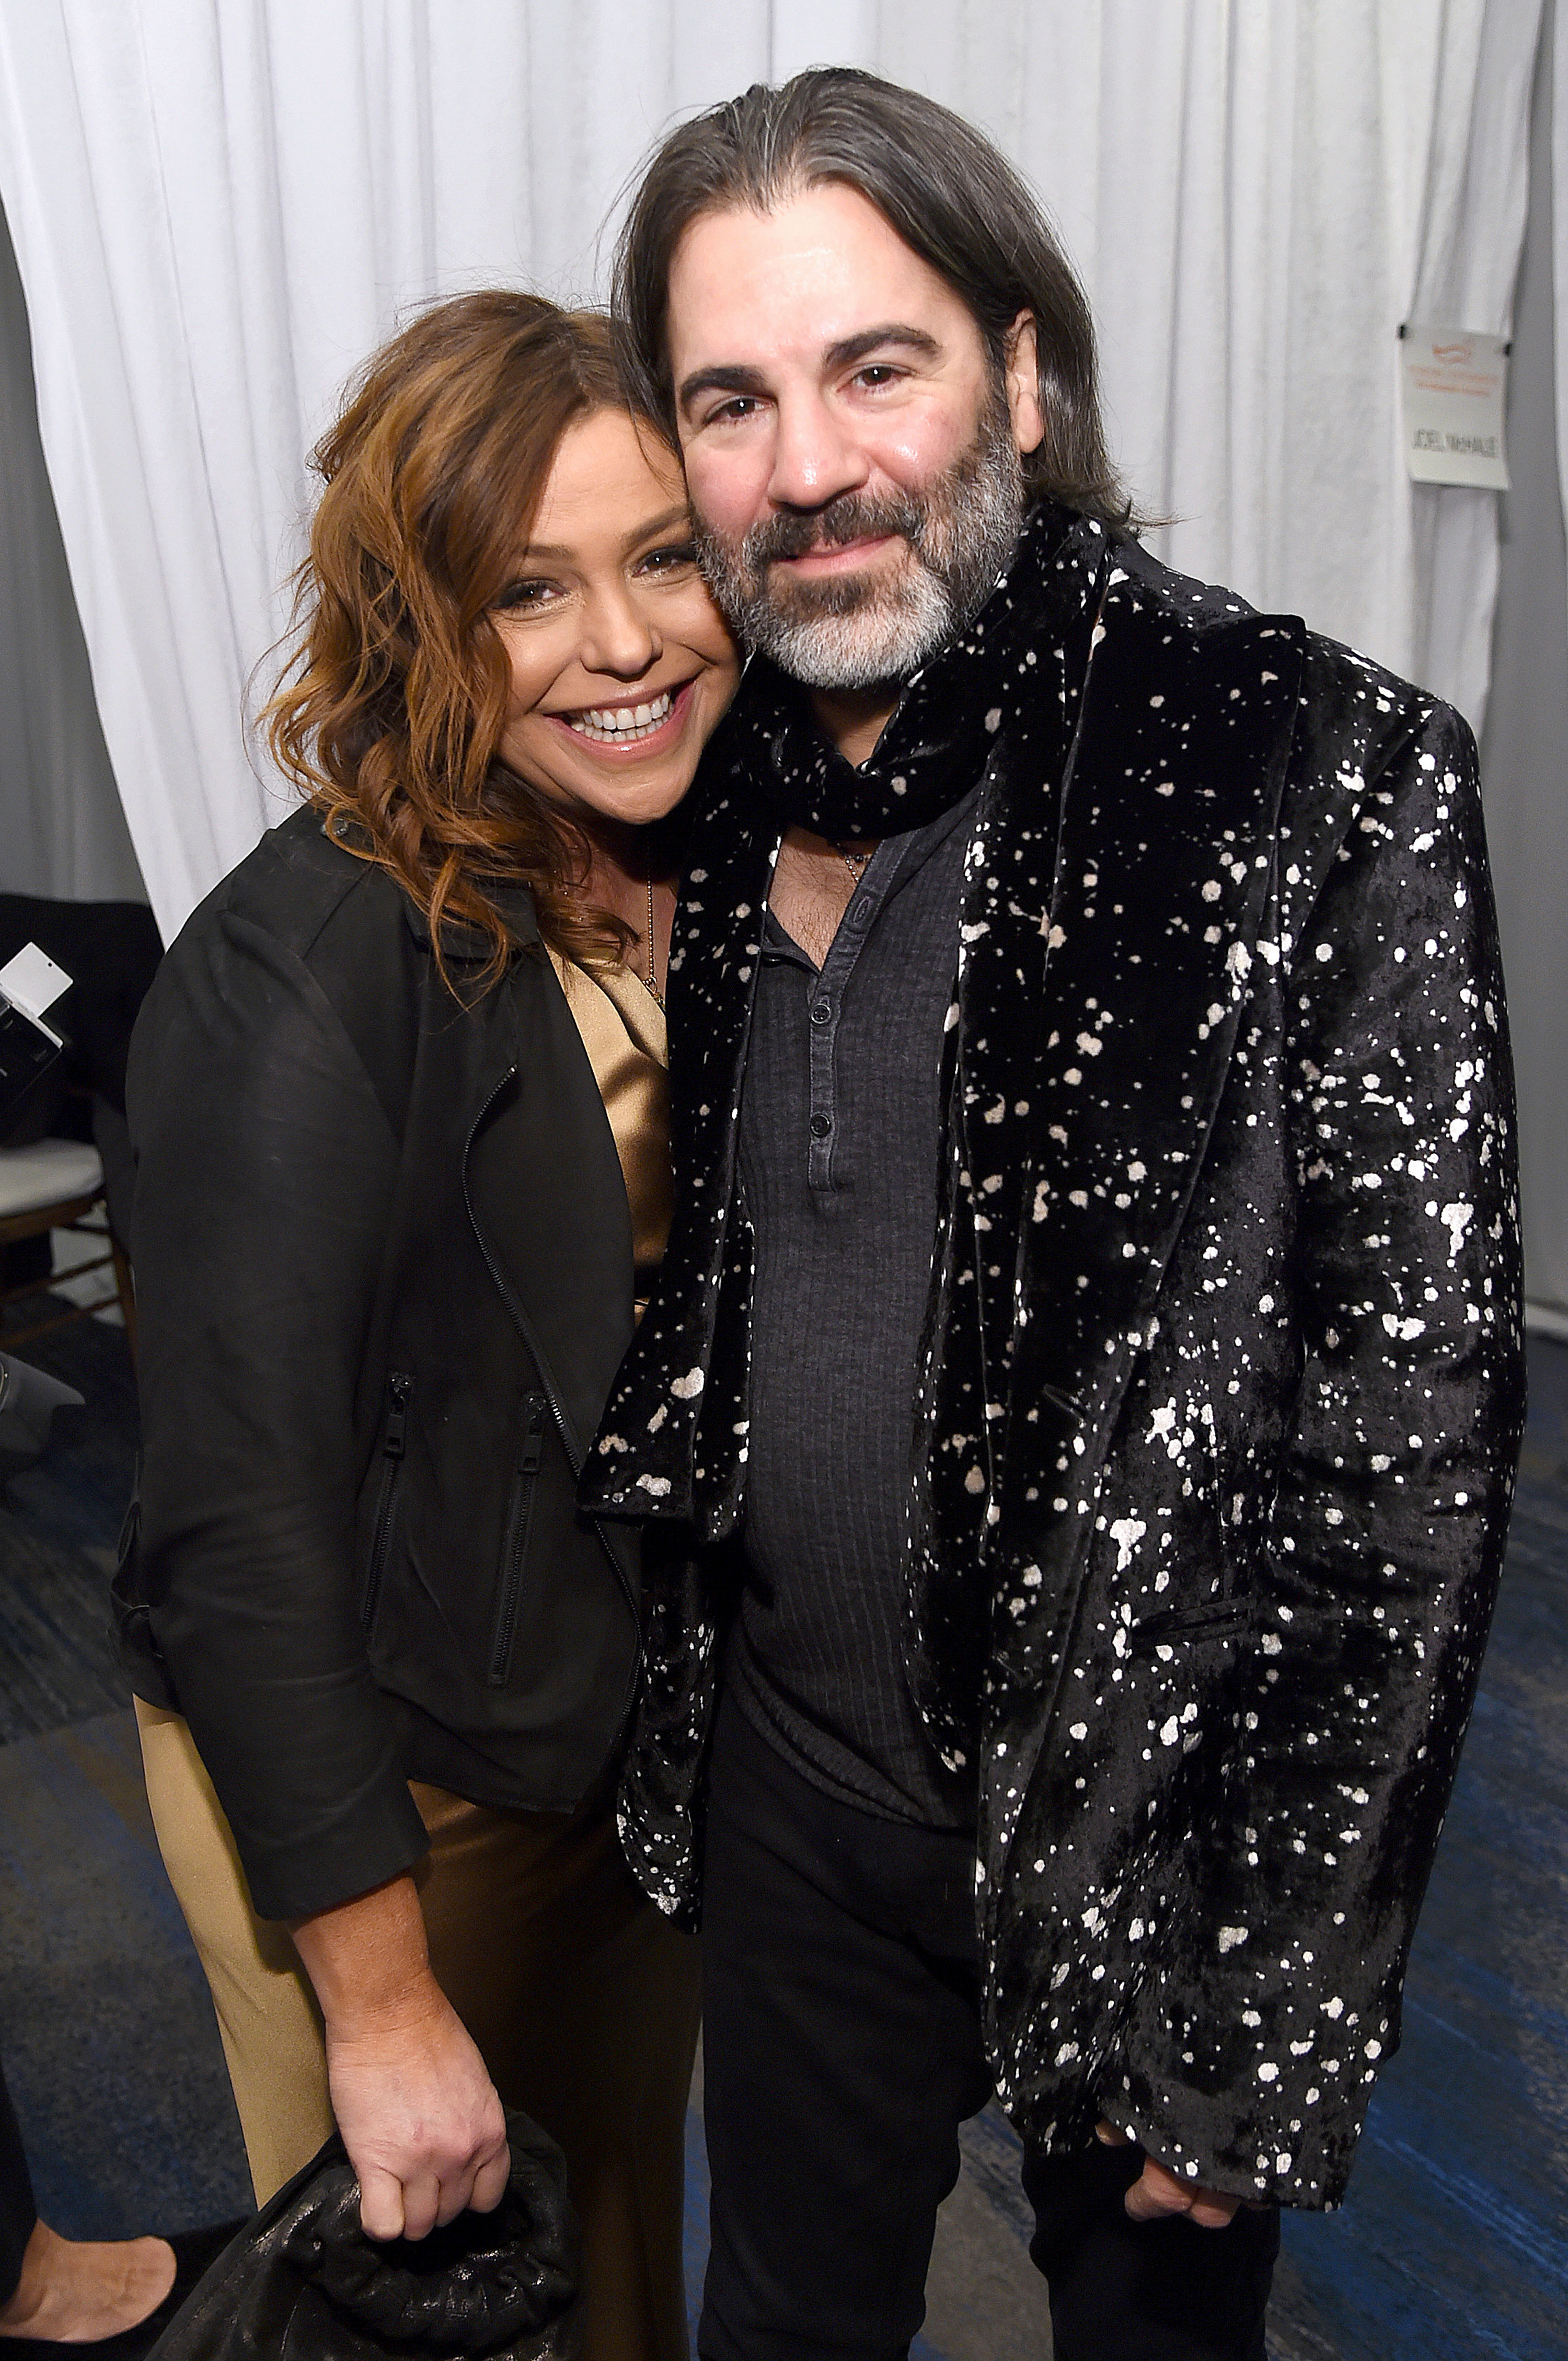 Rachael Ray and family safe after house fire   Houston ...Rachael Ray House Fire Today